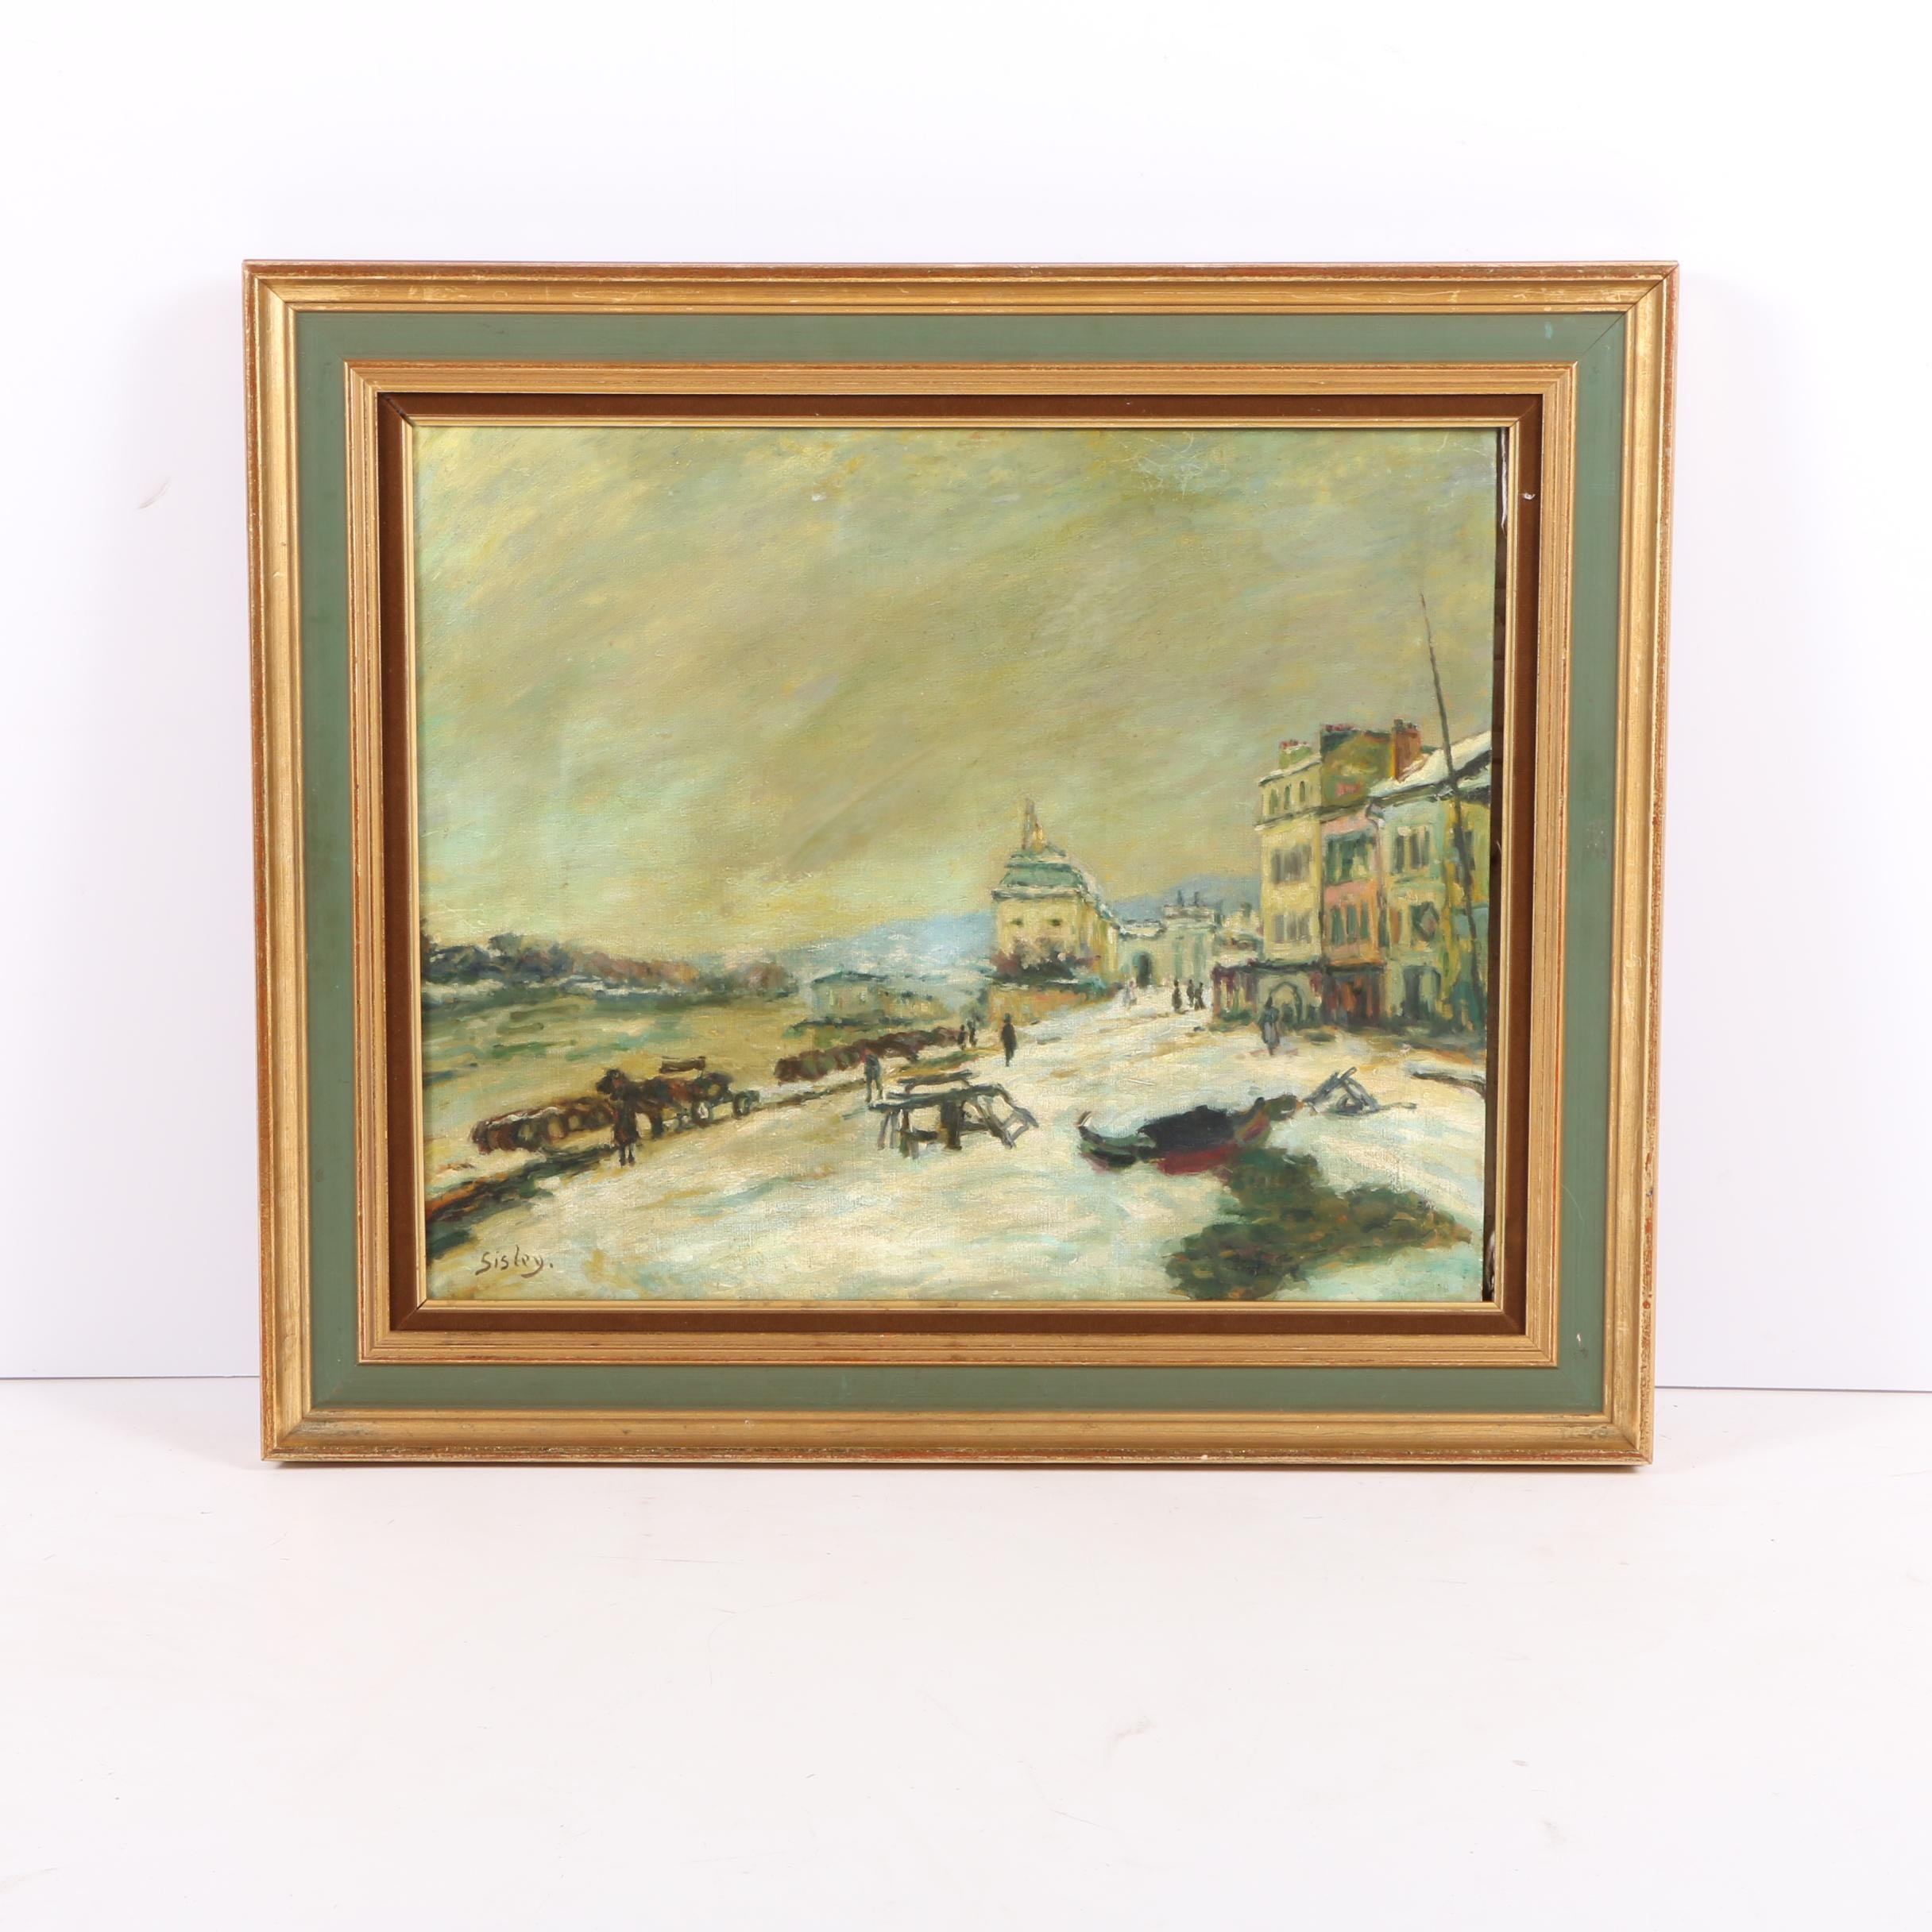 Oil on Canvas Painting in the Manner of Alfred Sisley of a Street Scene